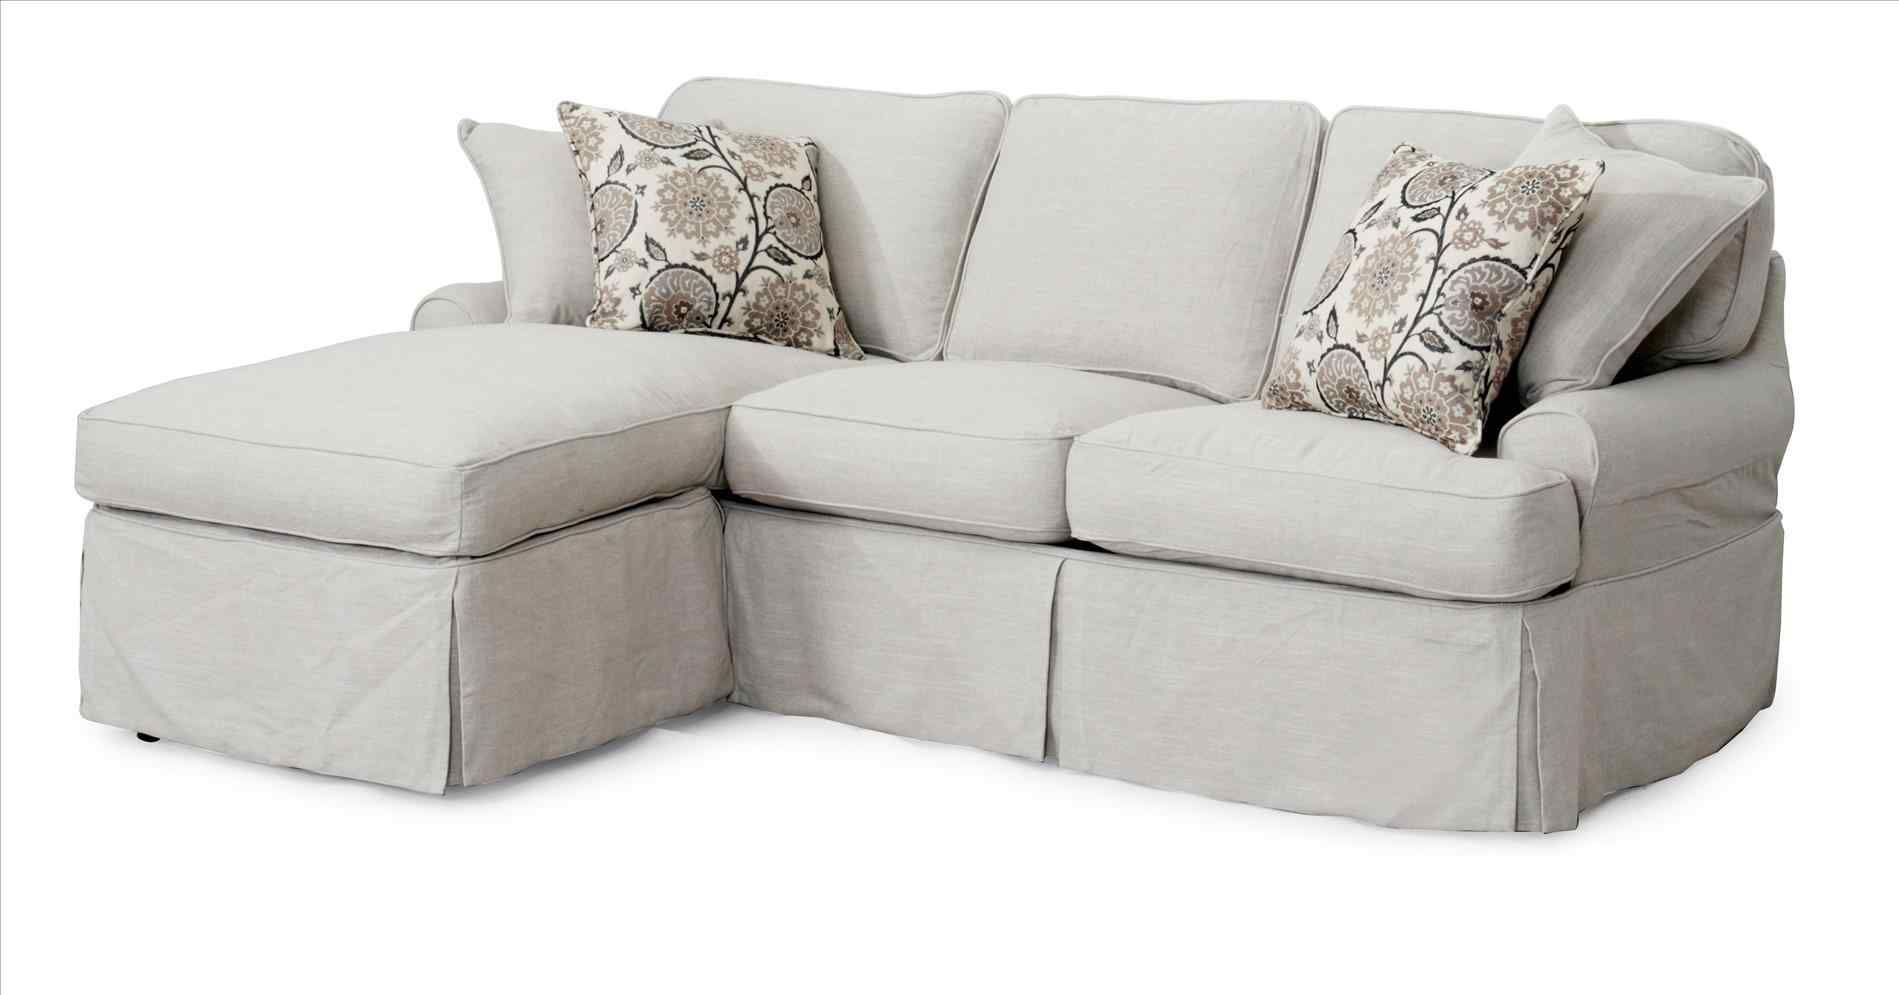 Slipcover For Oversized Chair And Ottoman Ansugallerycom Slipcovers For Sofa Sleepers Ottoman Sectional Rowe